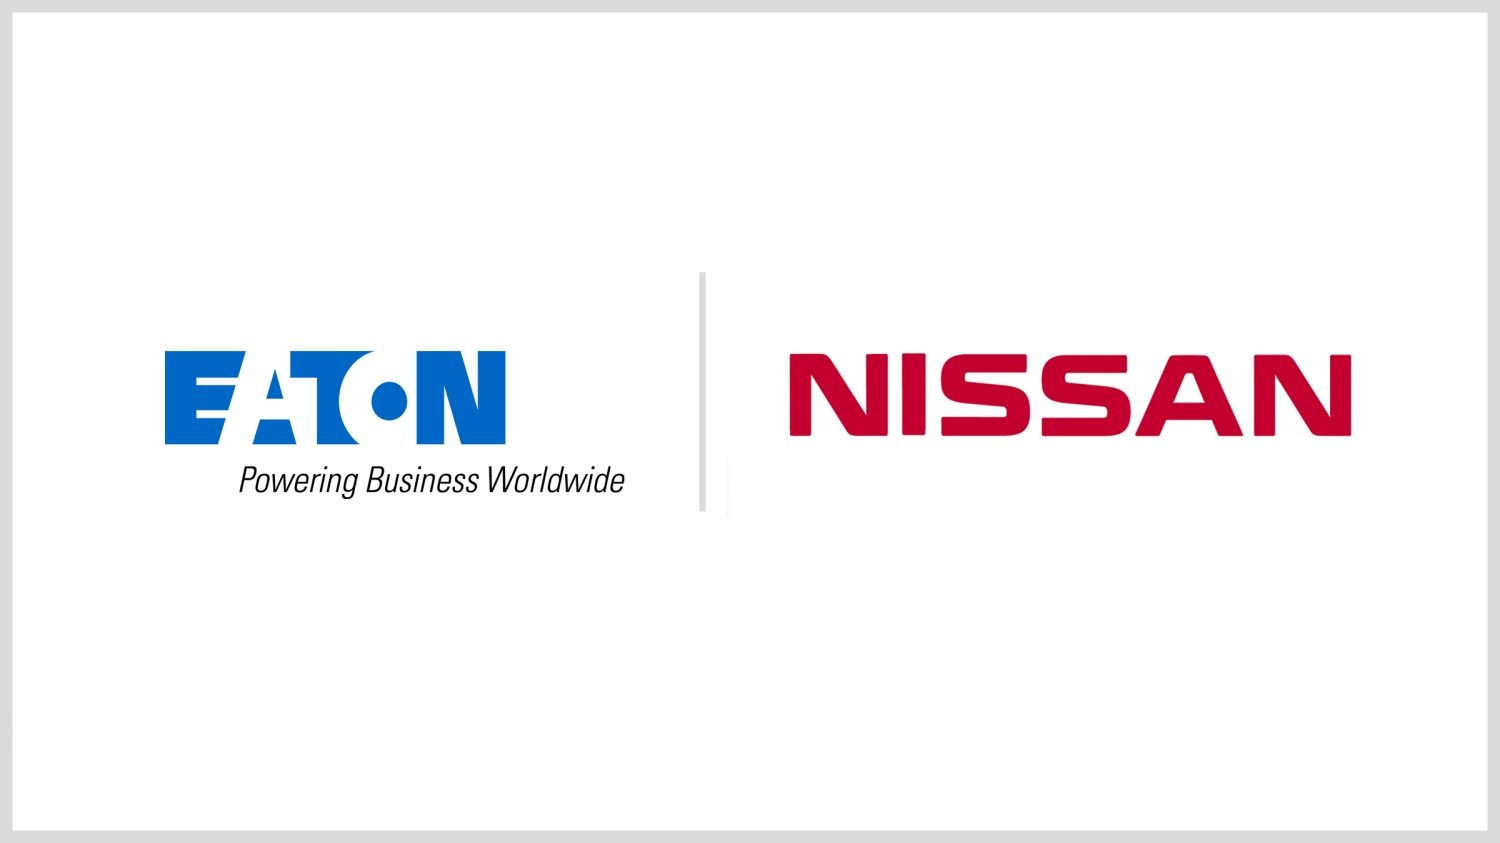 Eaton, Nissan collaboration